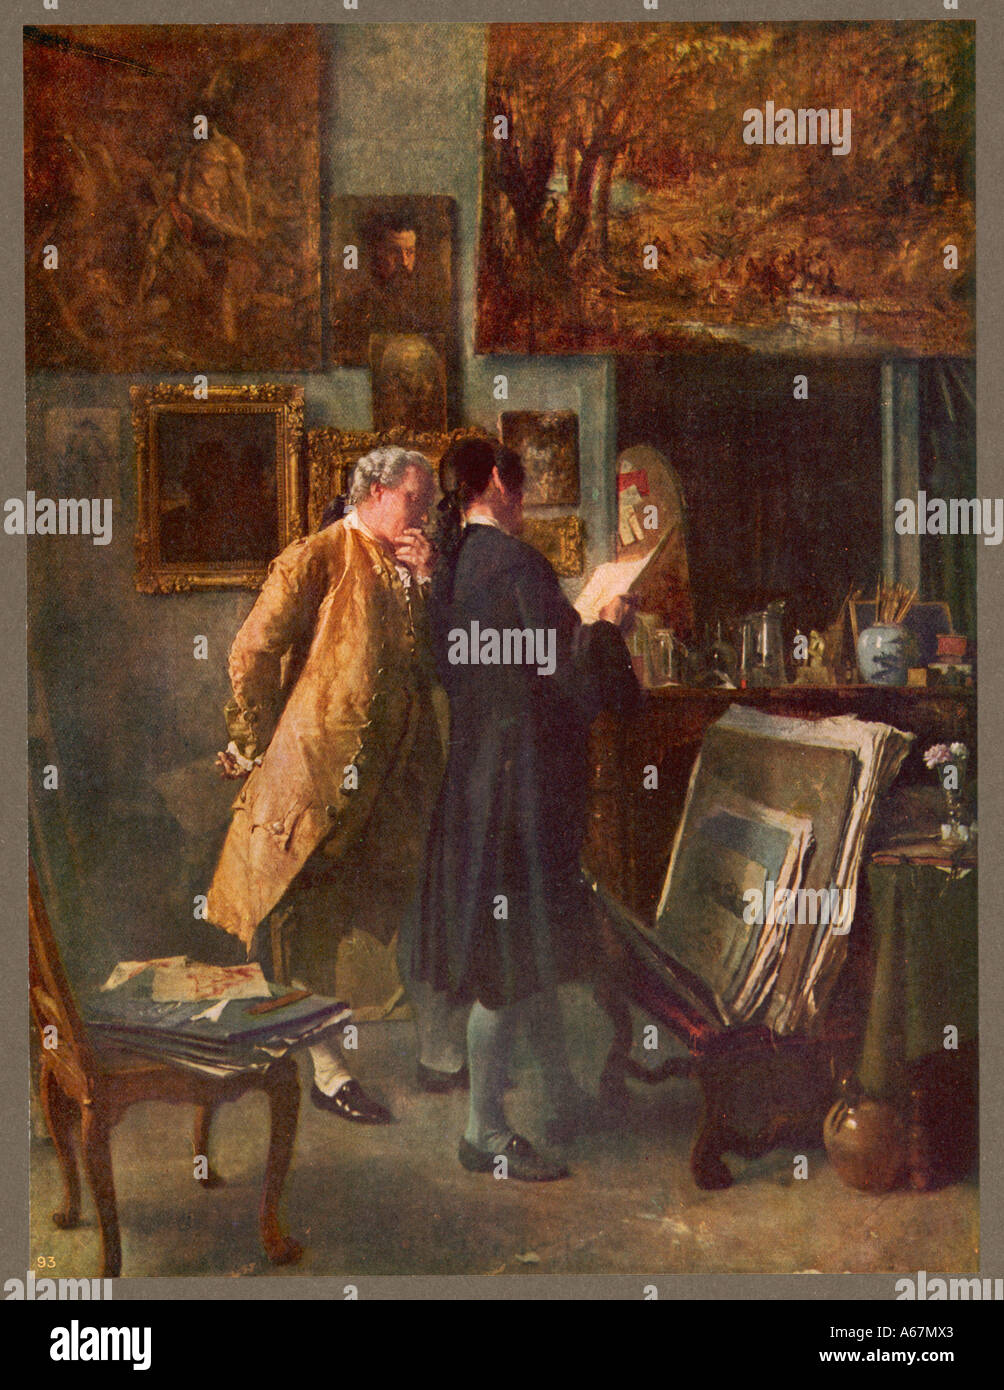 Print Collector C18 - Stock Image